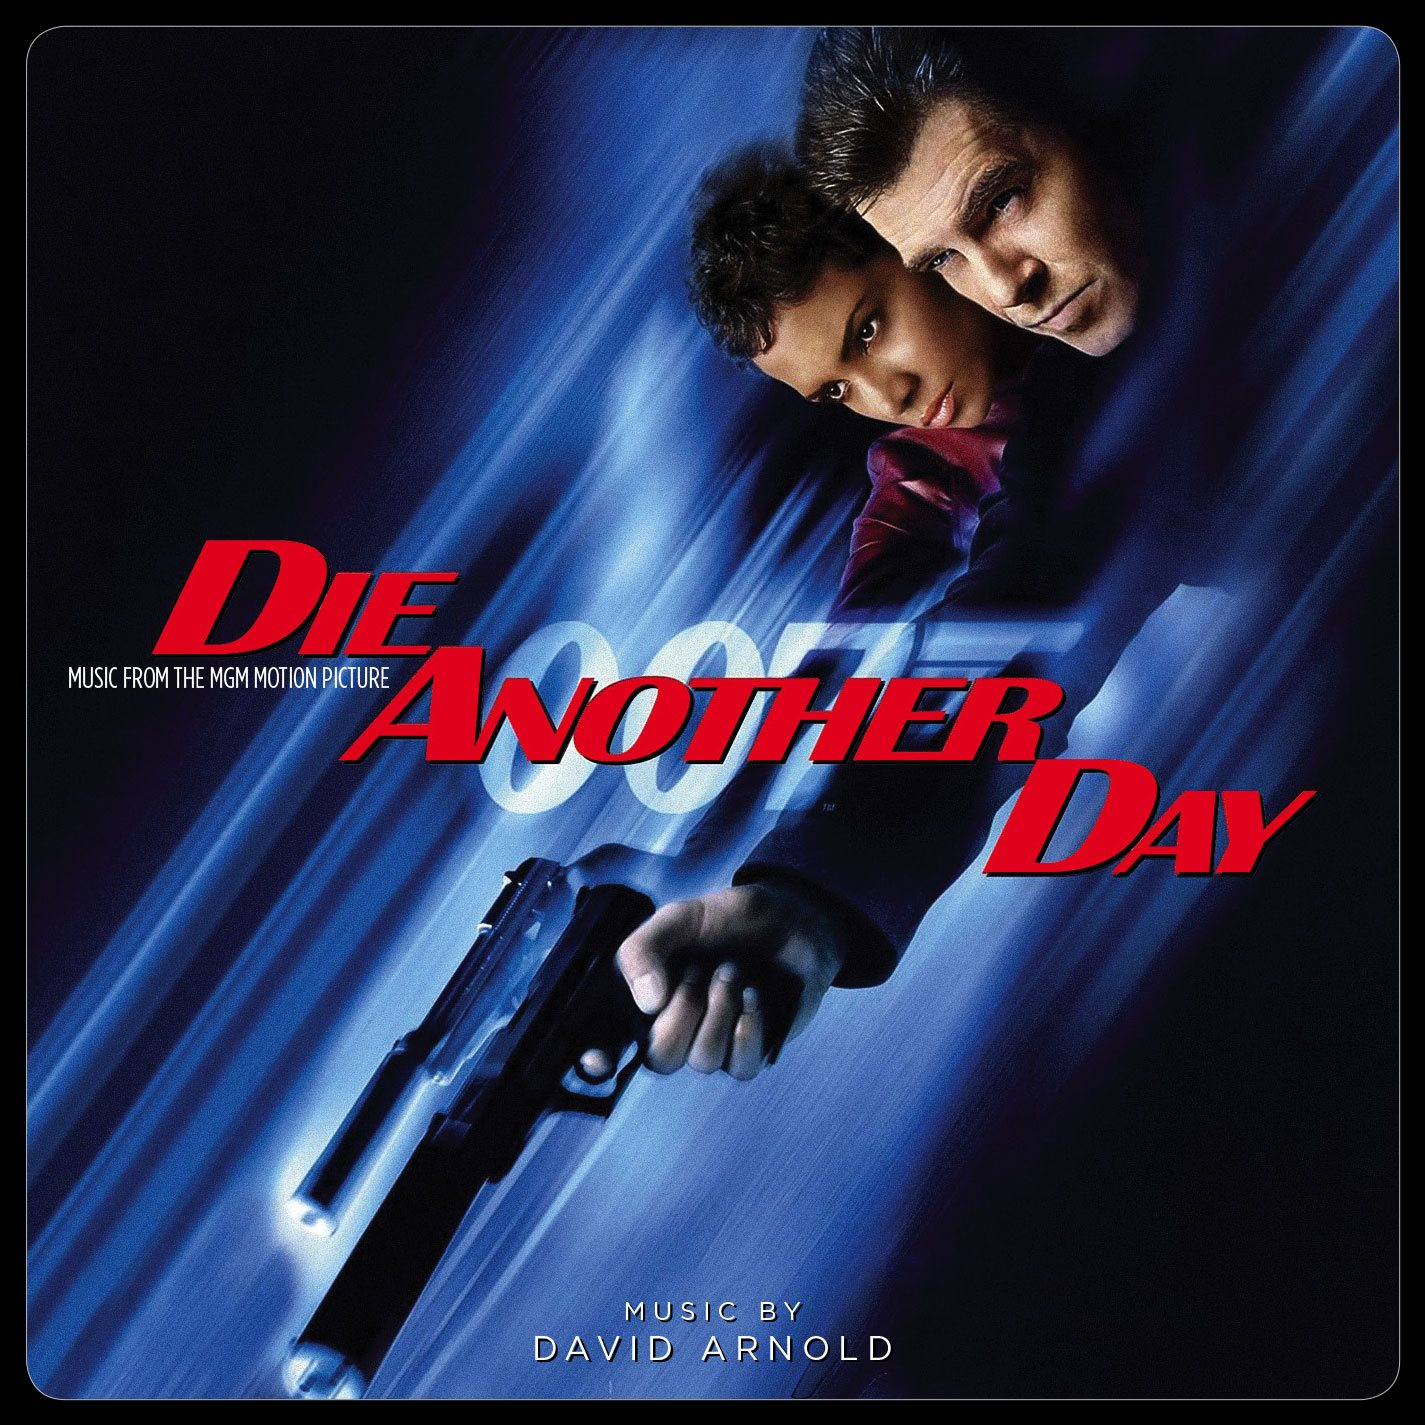 Die Another Day (2CD), Detalles